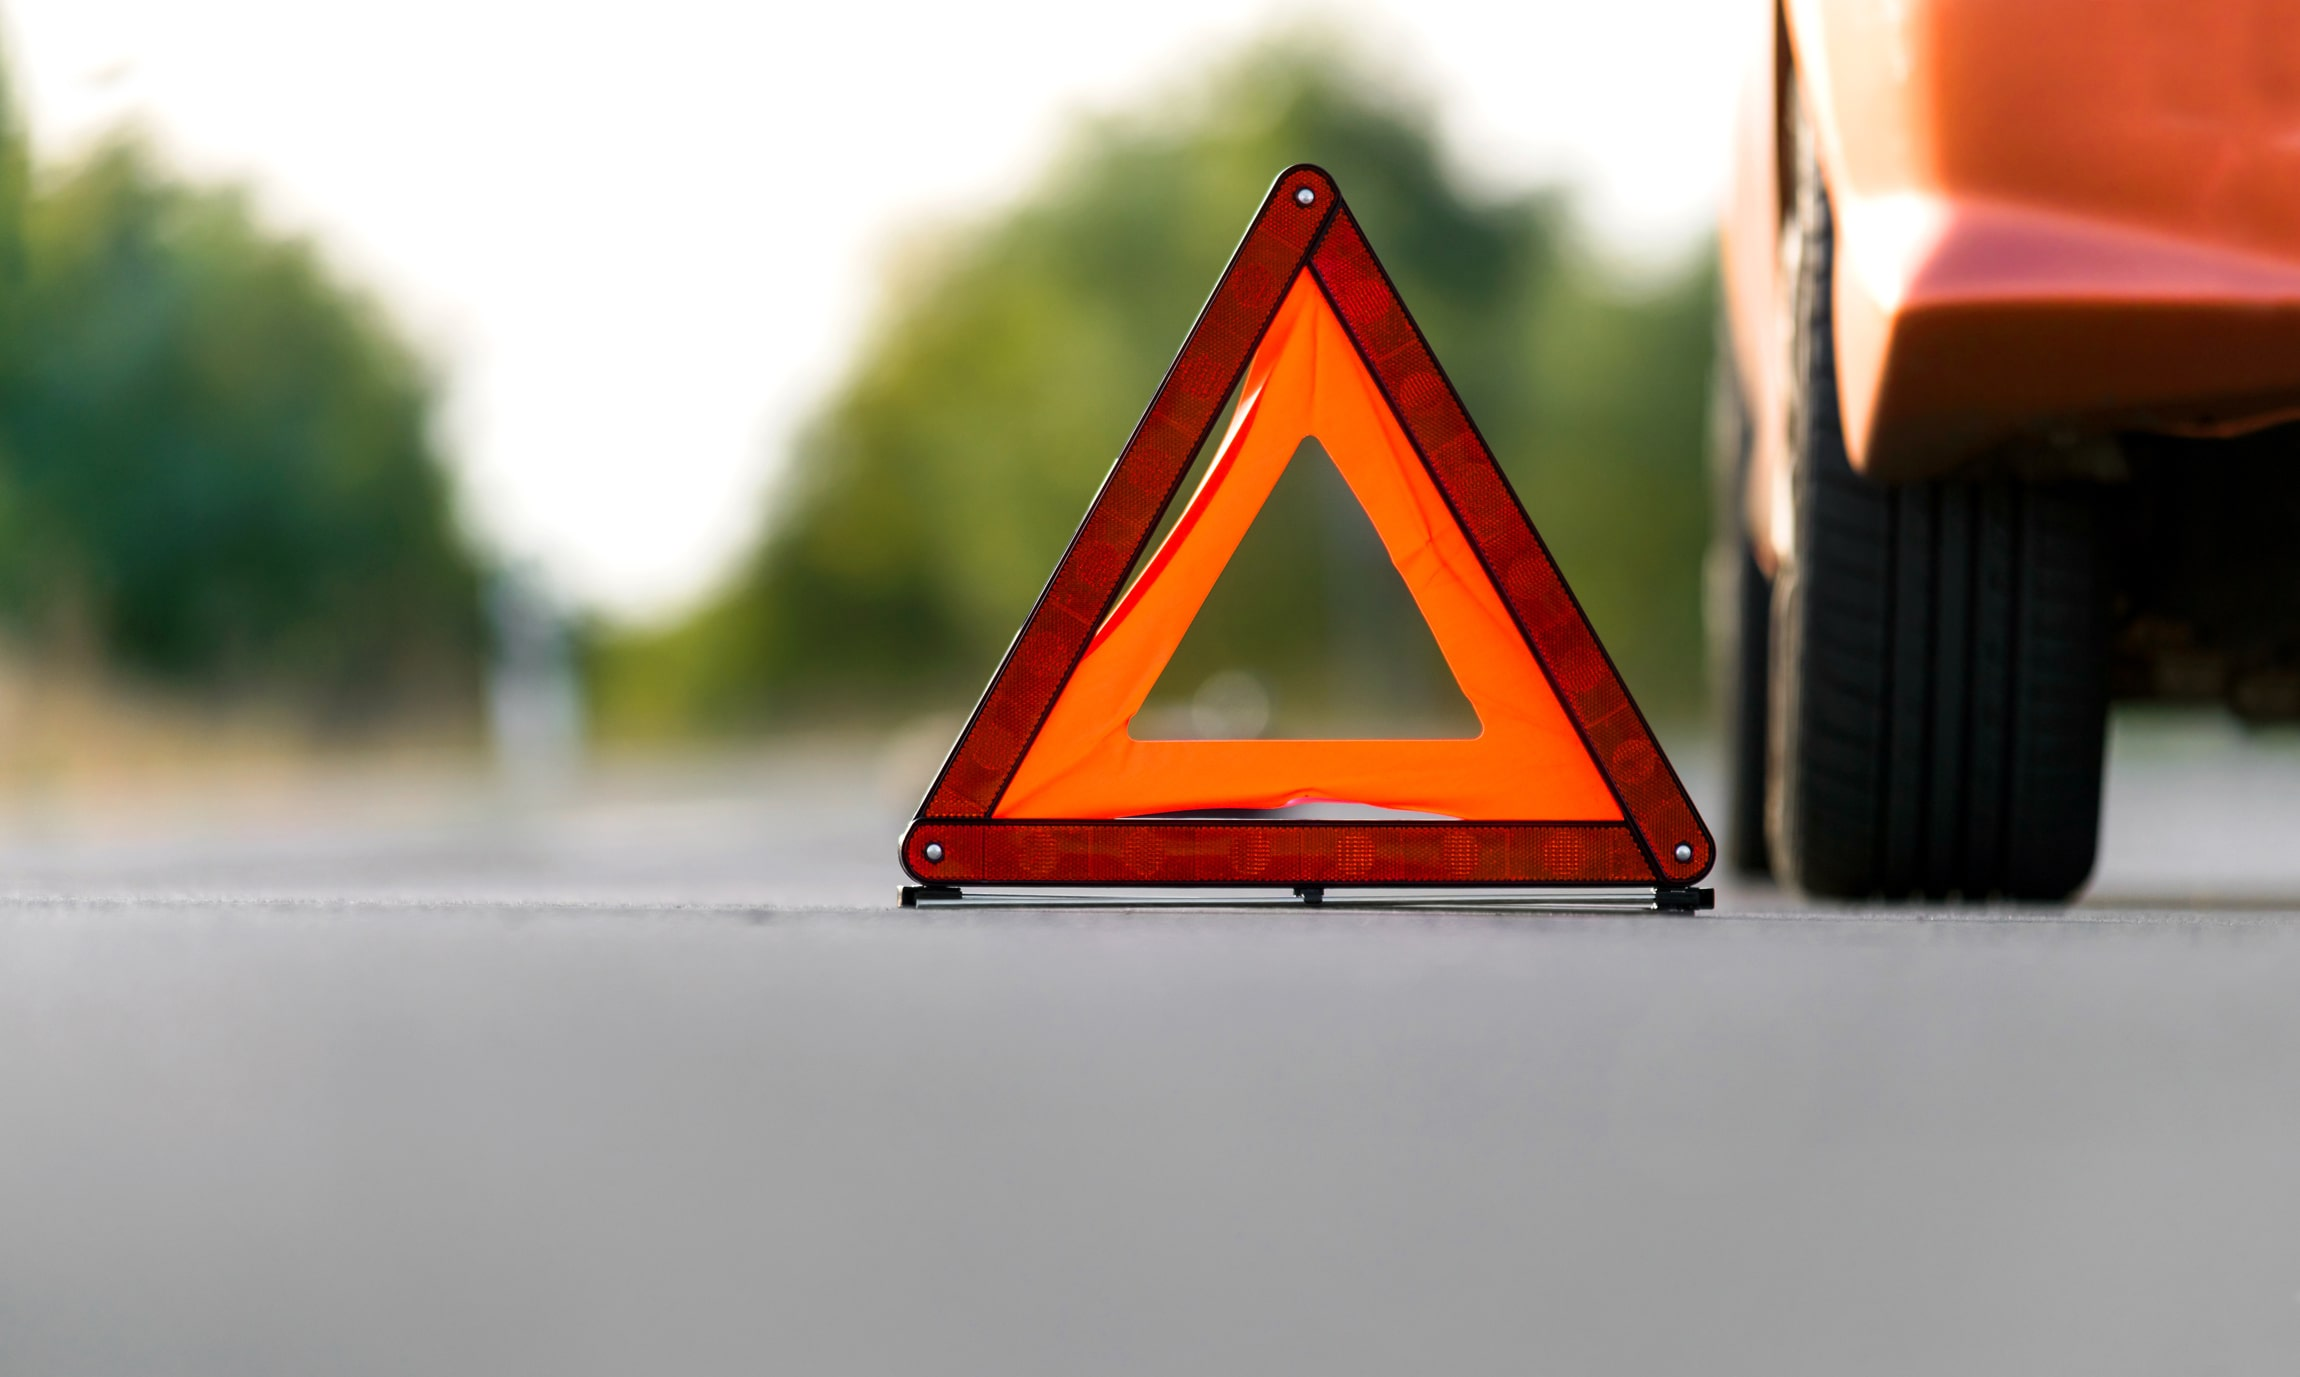 car parked on the side of the road with a red triangle